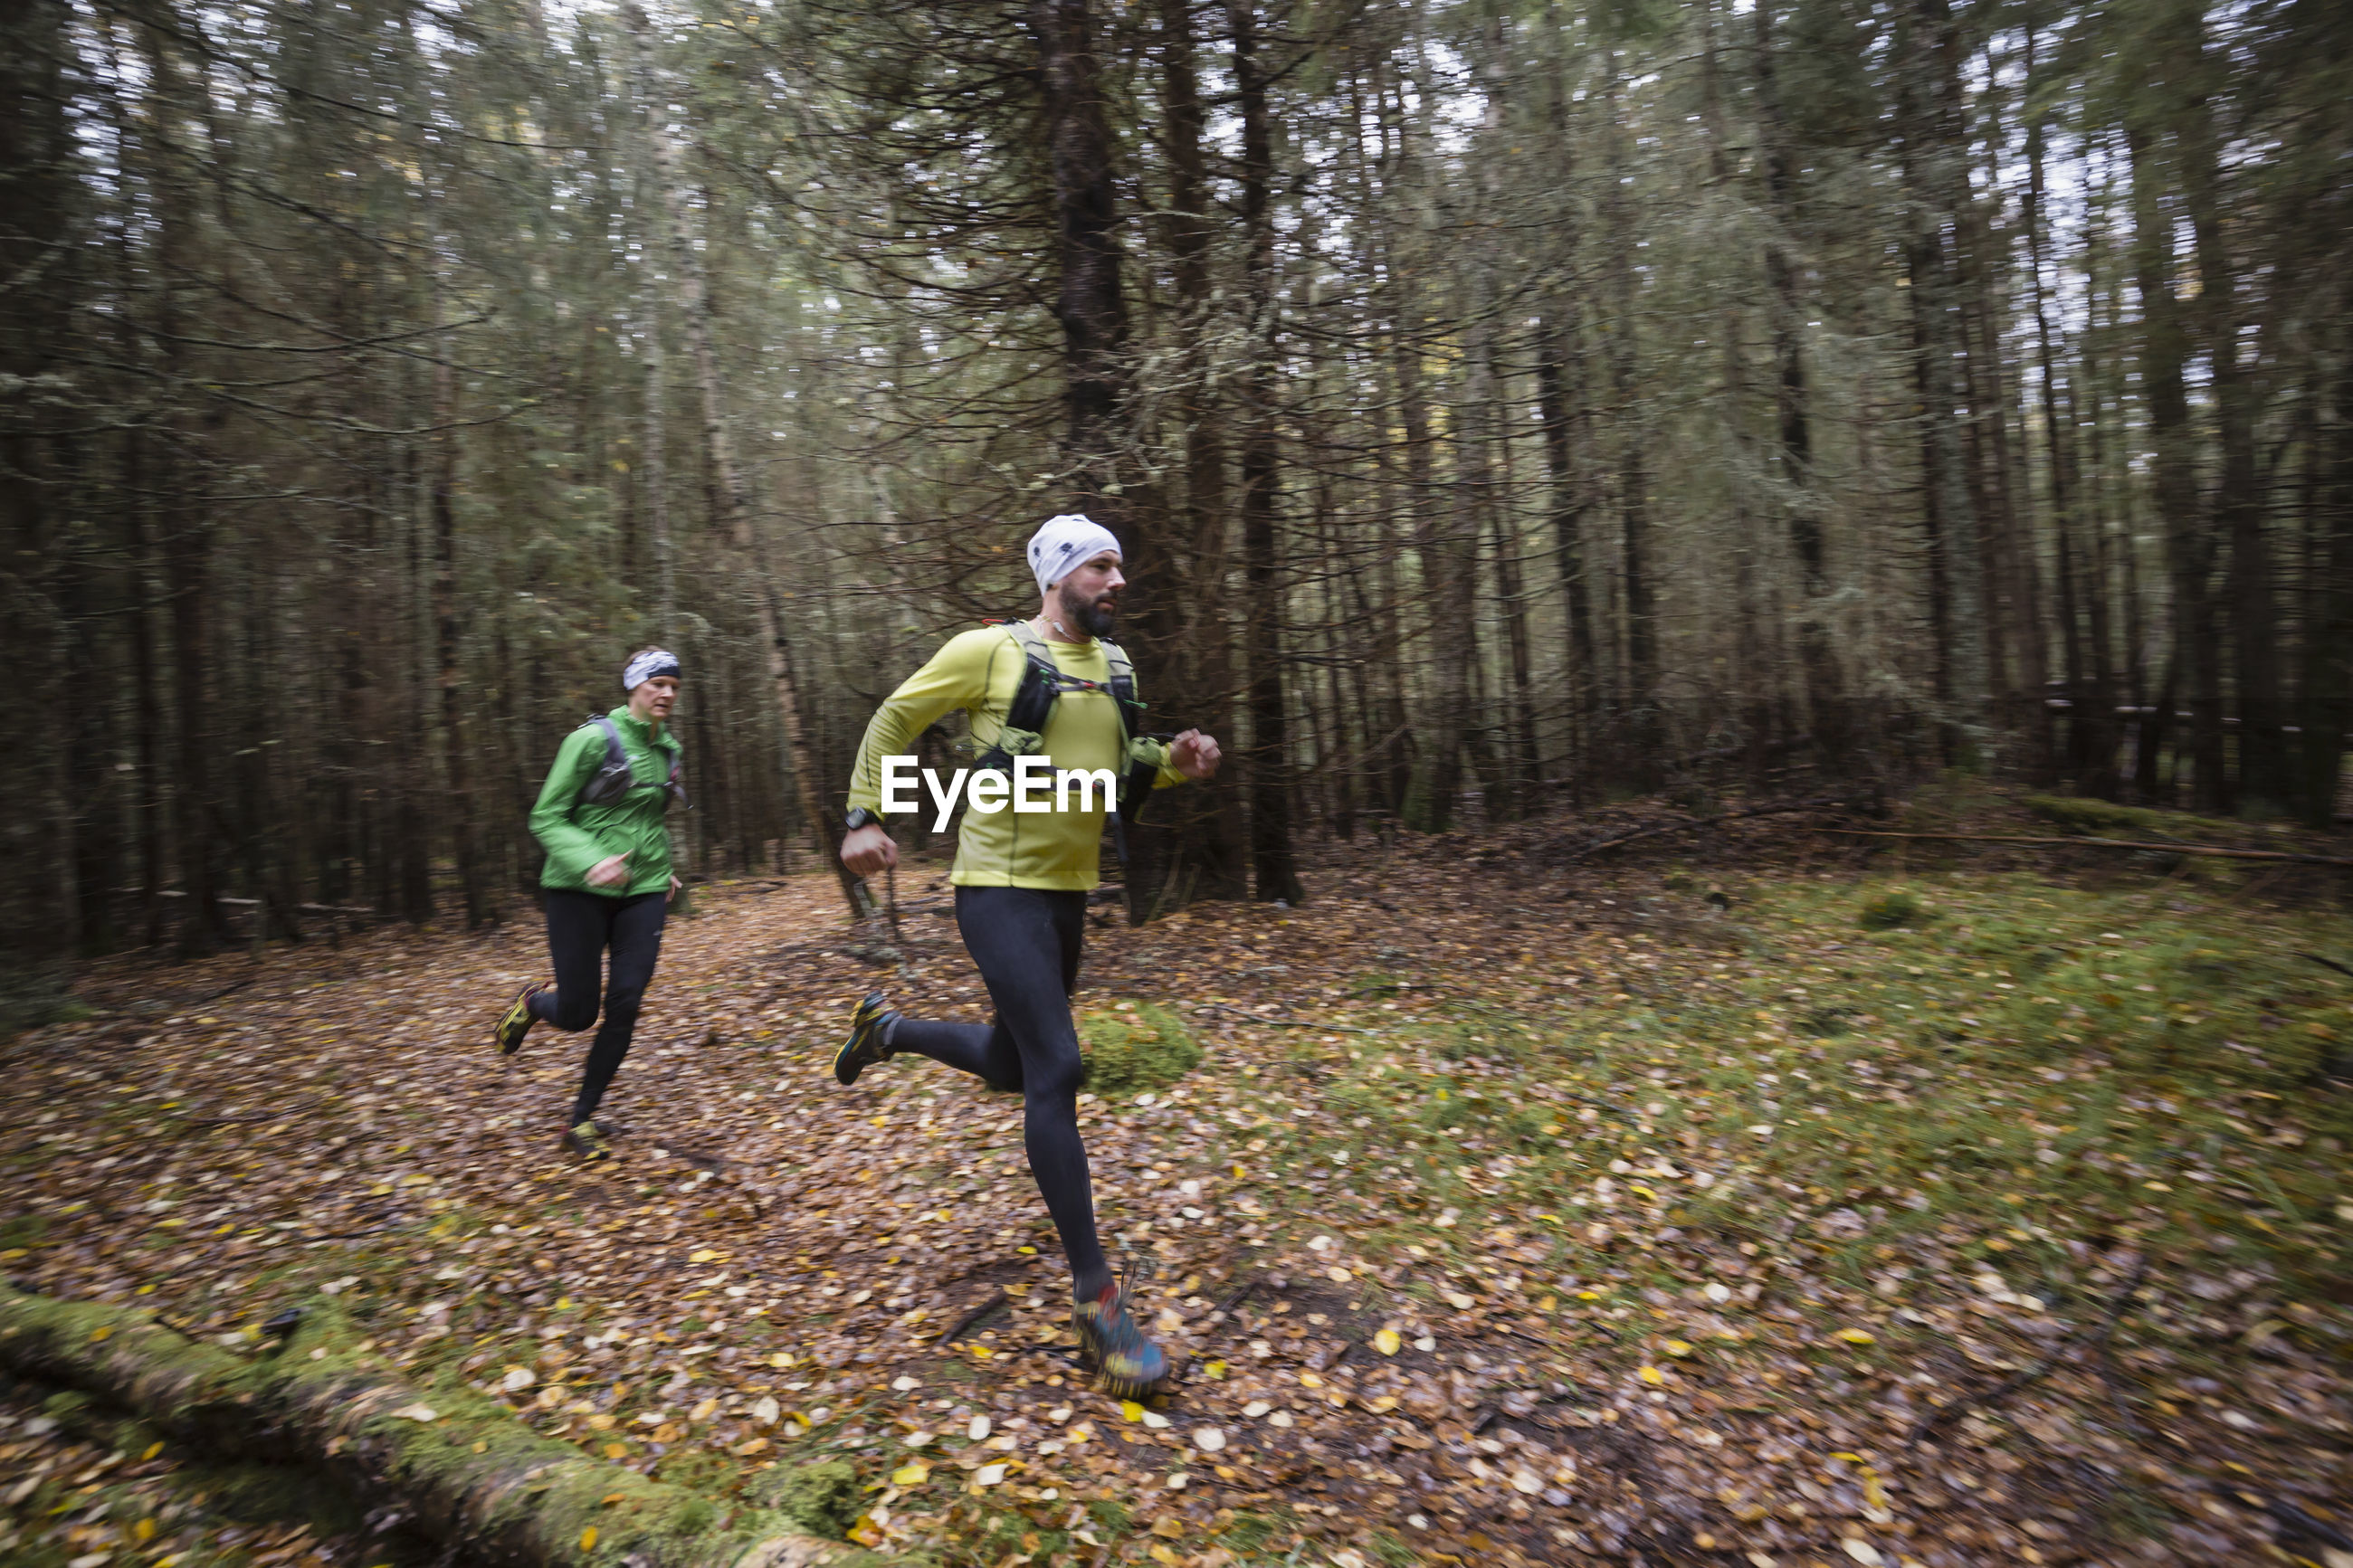 REAR VIEW OF PEOPLE RUNNING ON ROAD IN FOREST